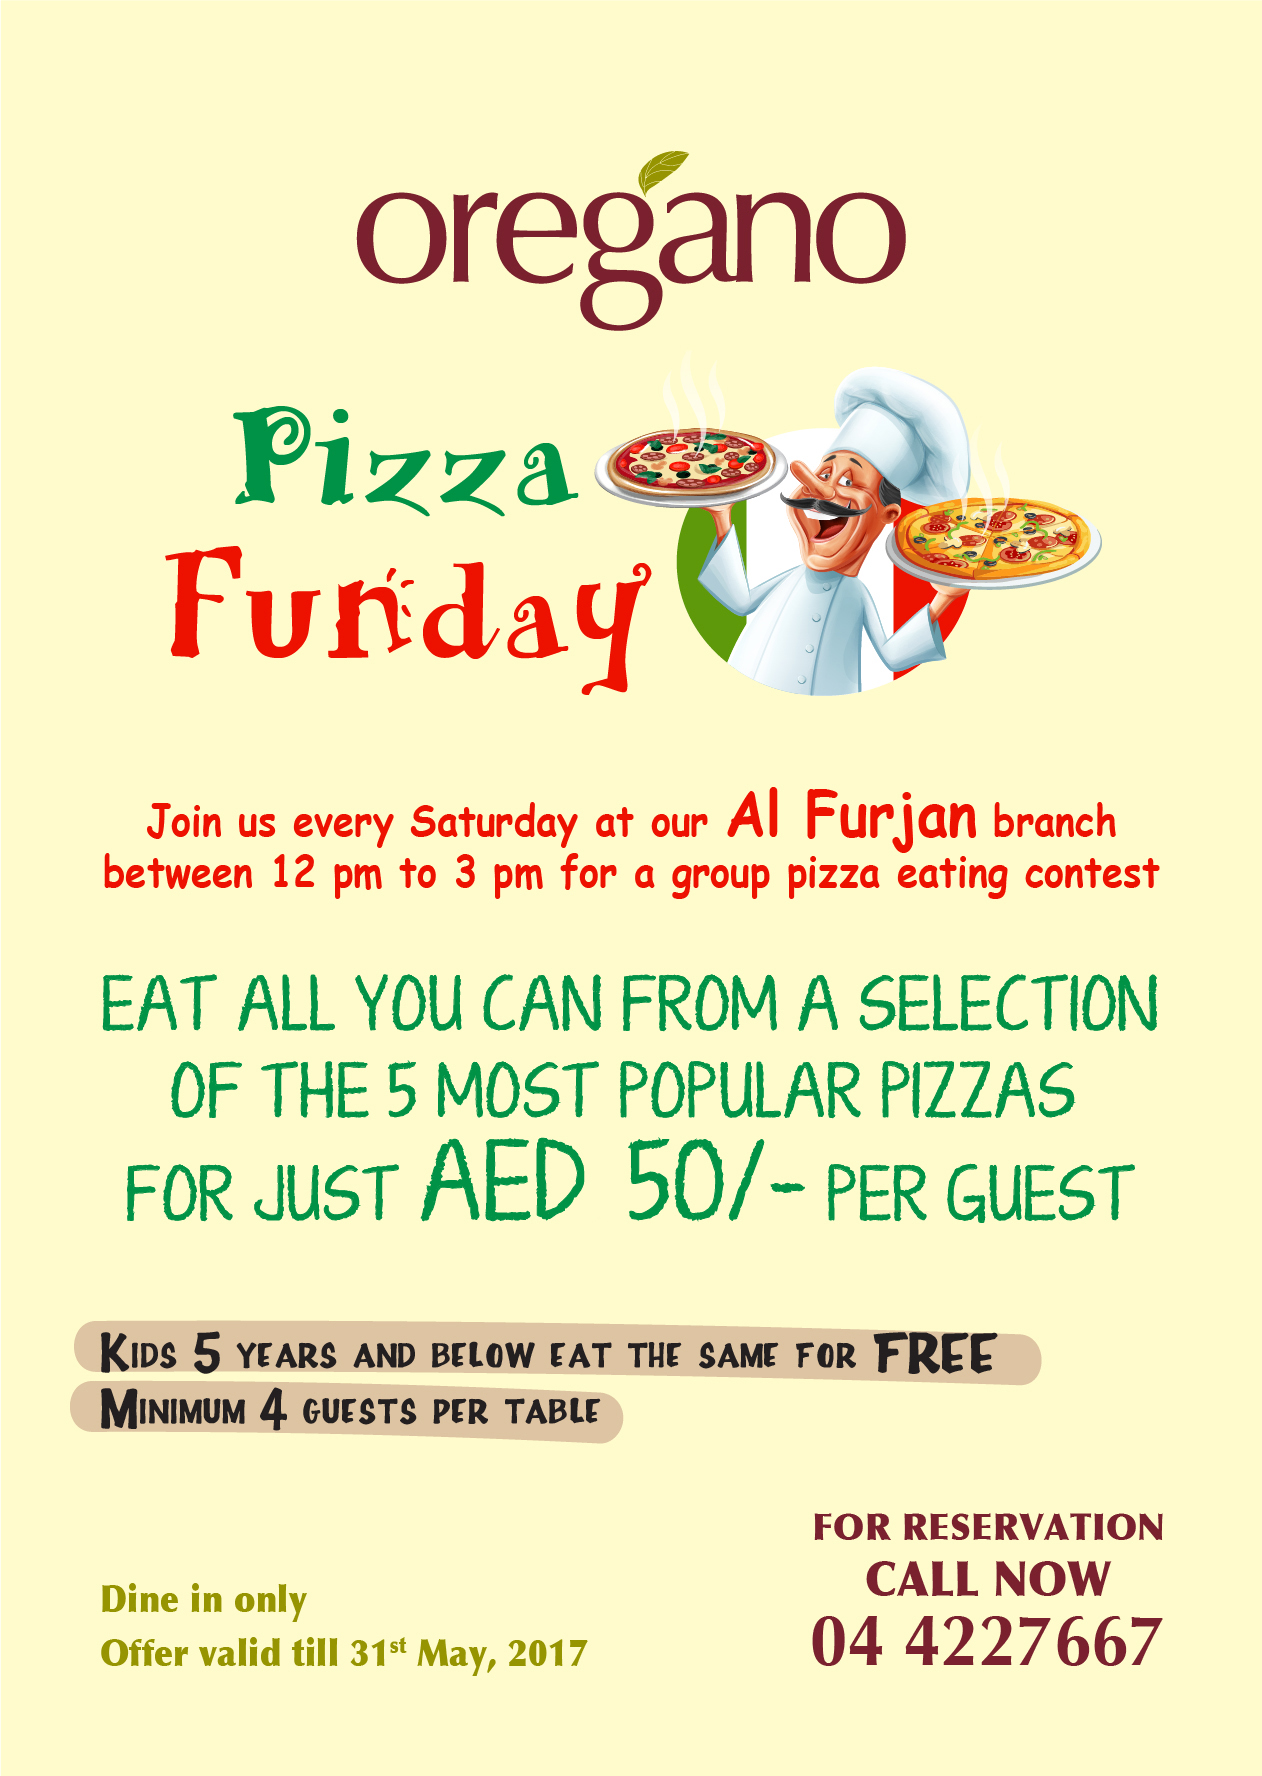 Pizza Funday_Oregano